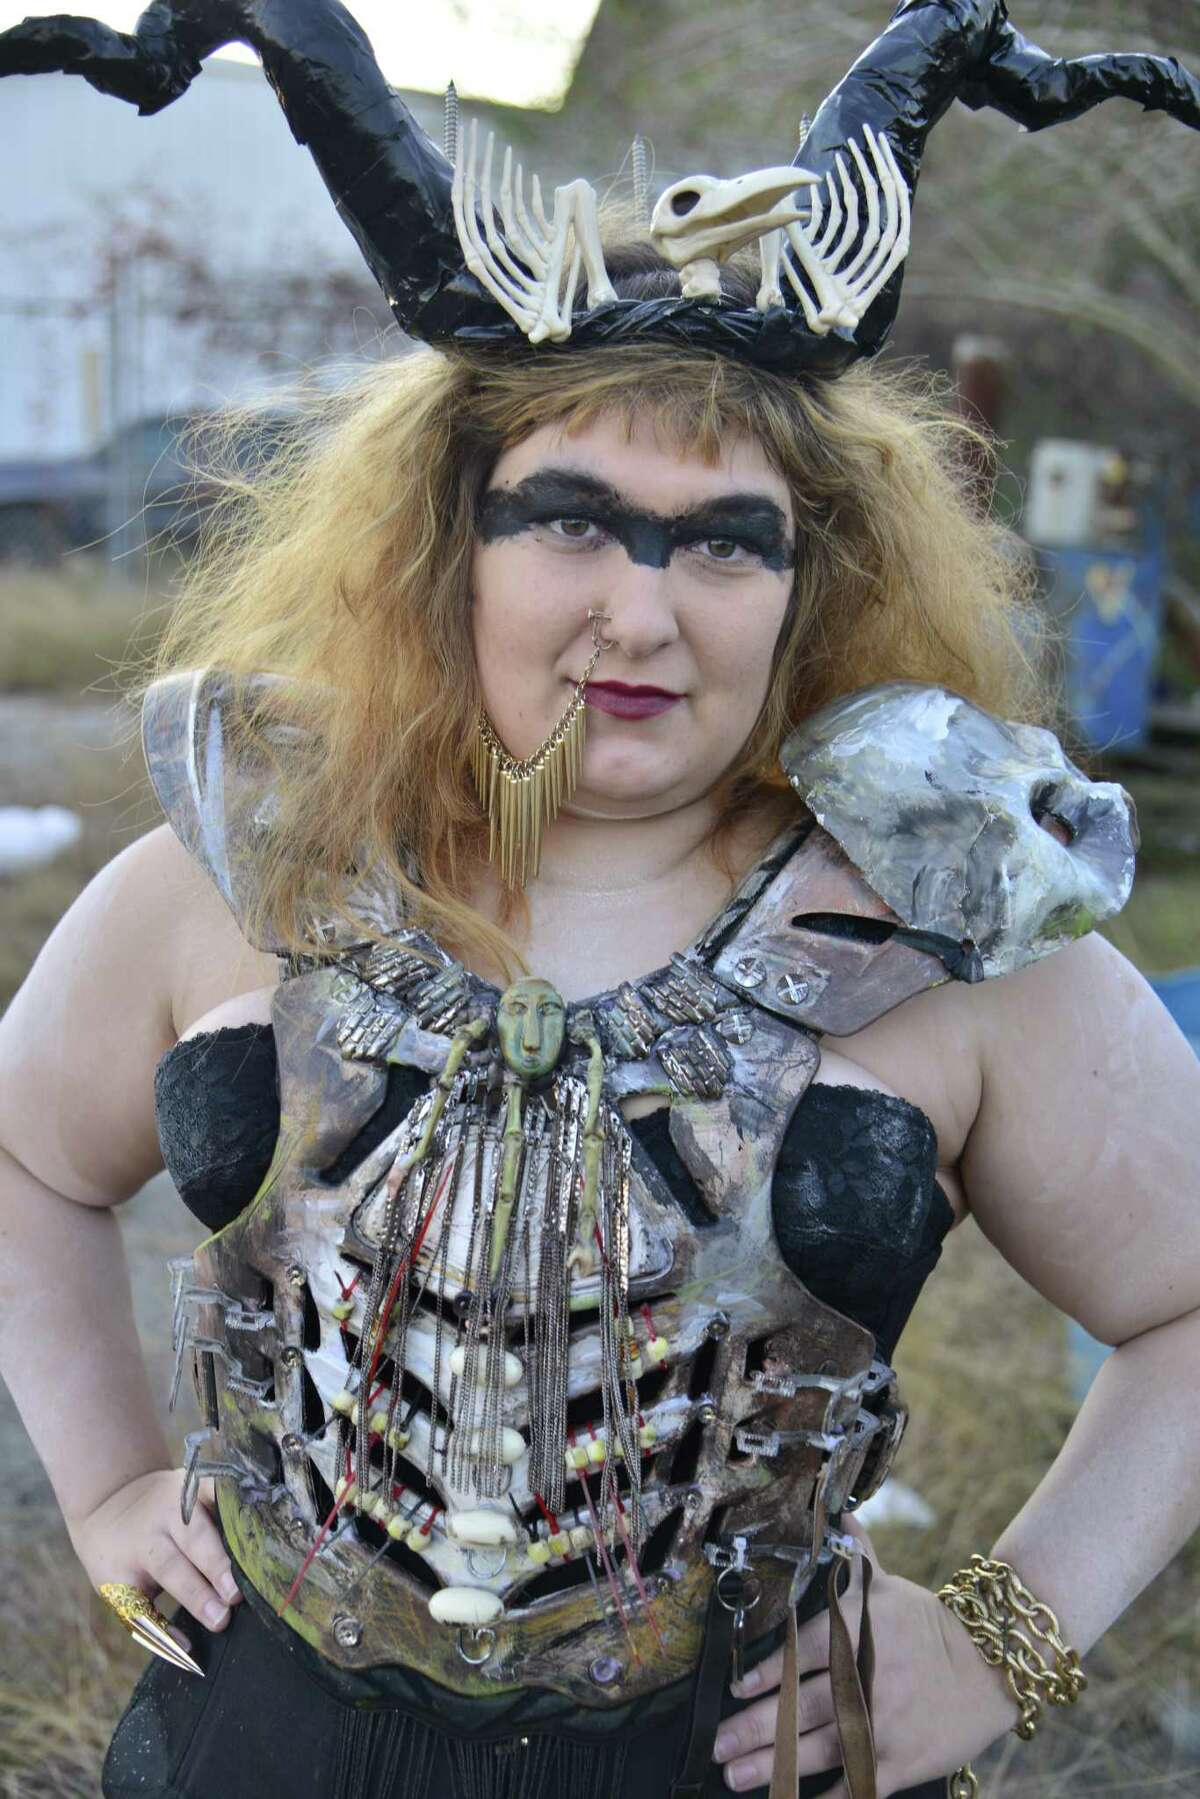 Southeast Texans model their costumes for the Beaux Arts Ball's Winter Wonder Wasteland theme.